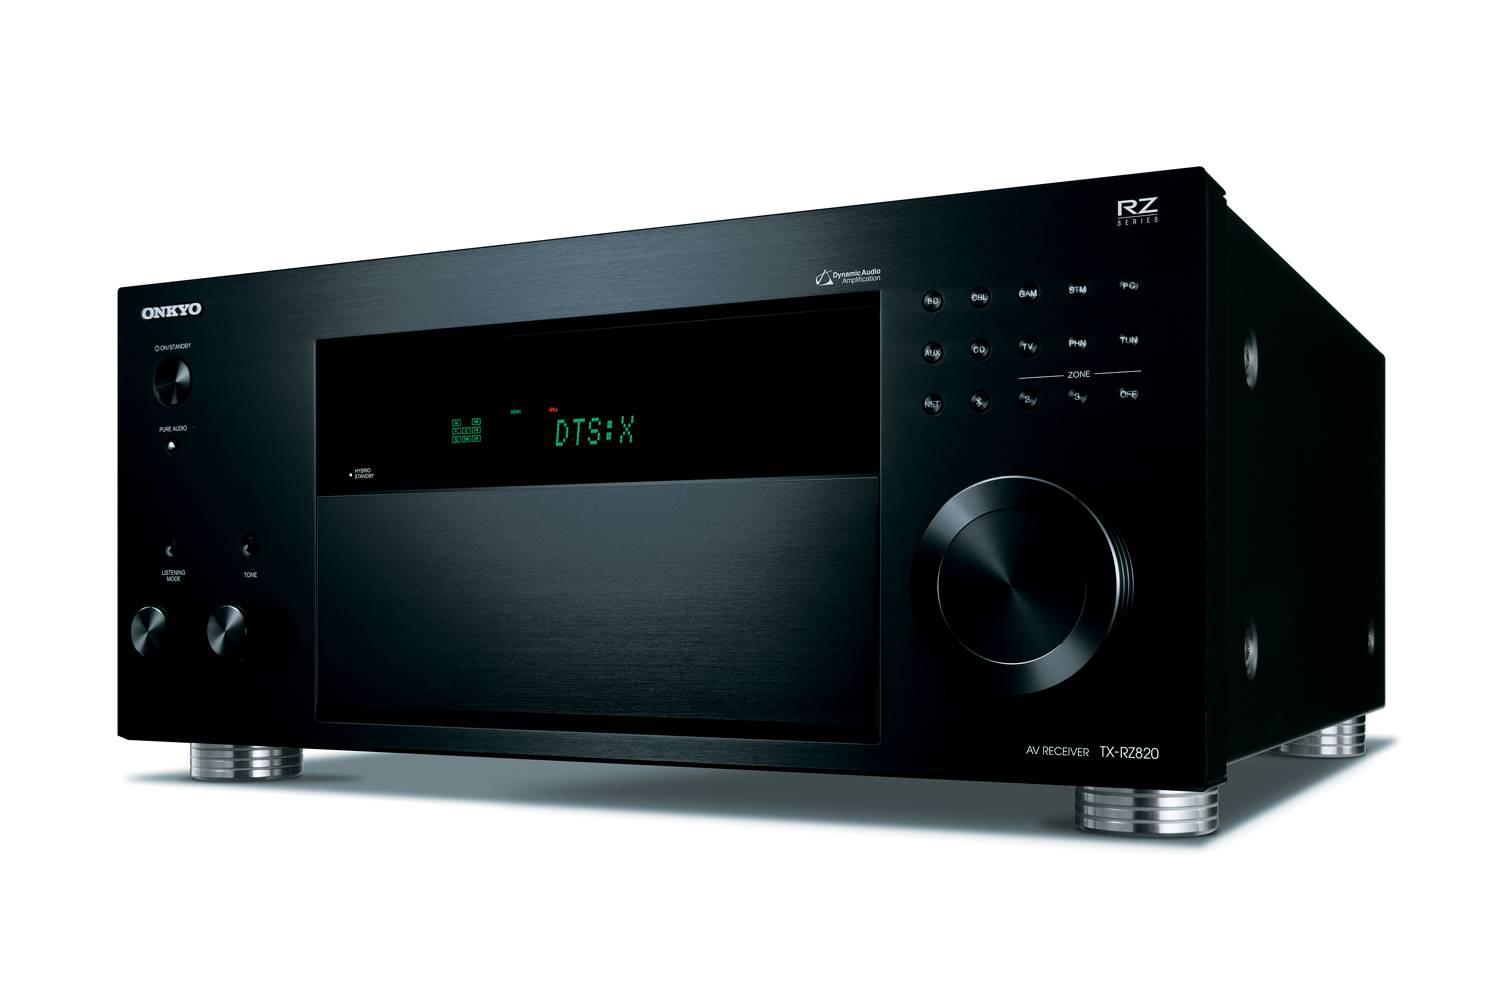 Review Of The Onkyo tx-rz820